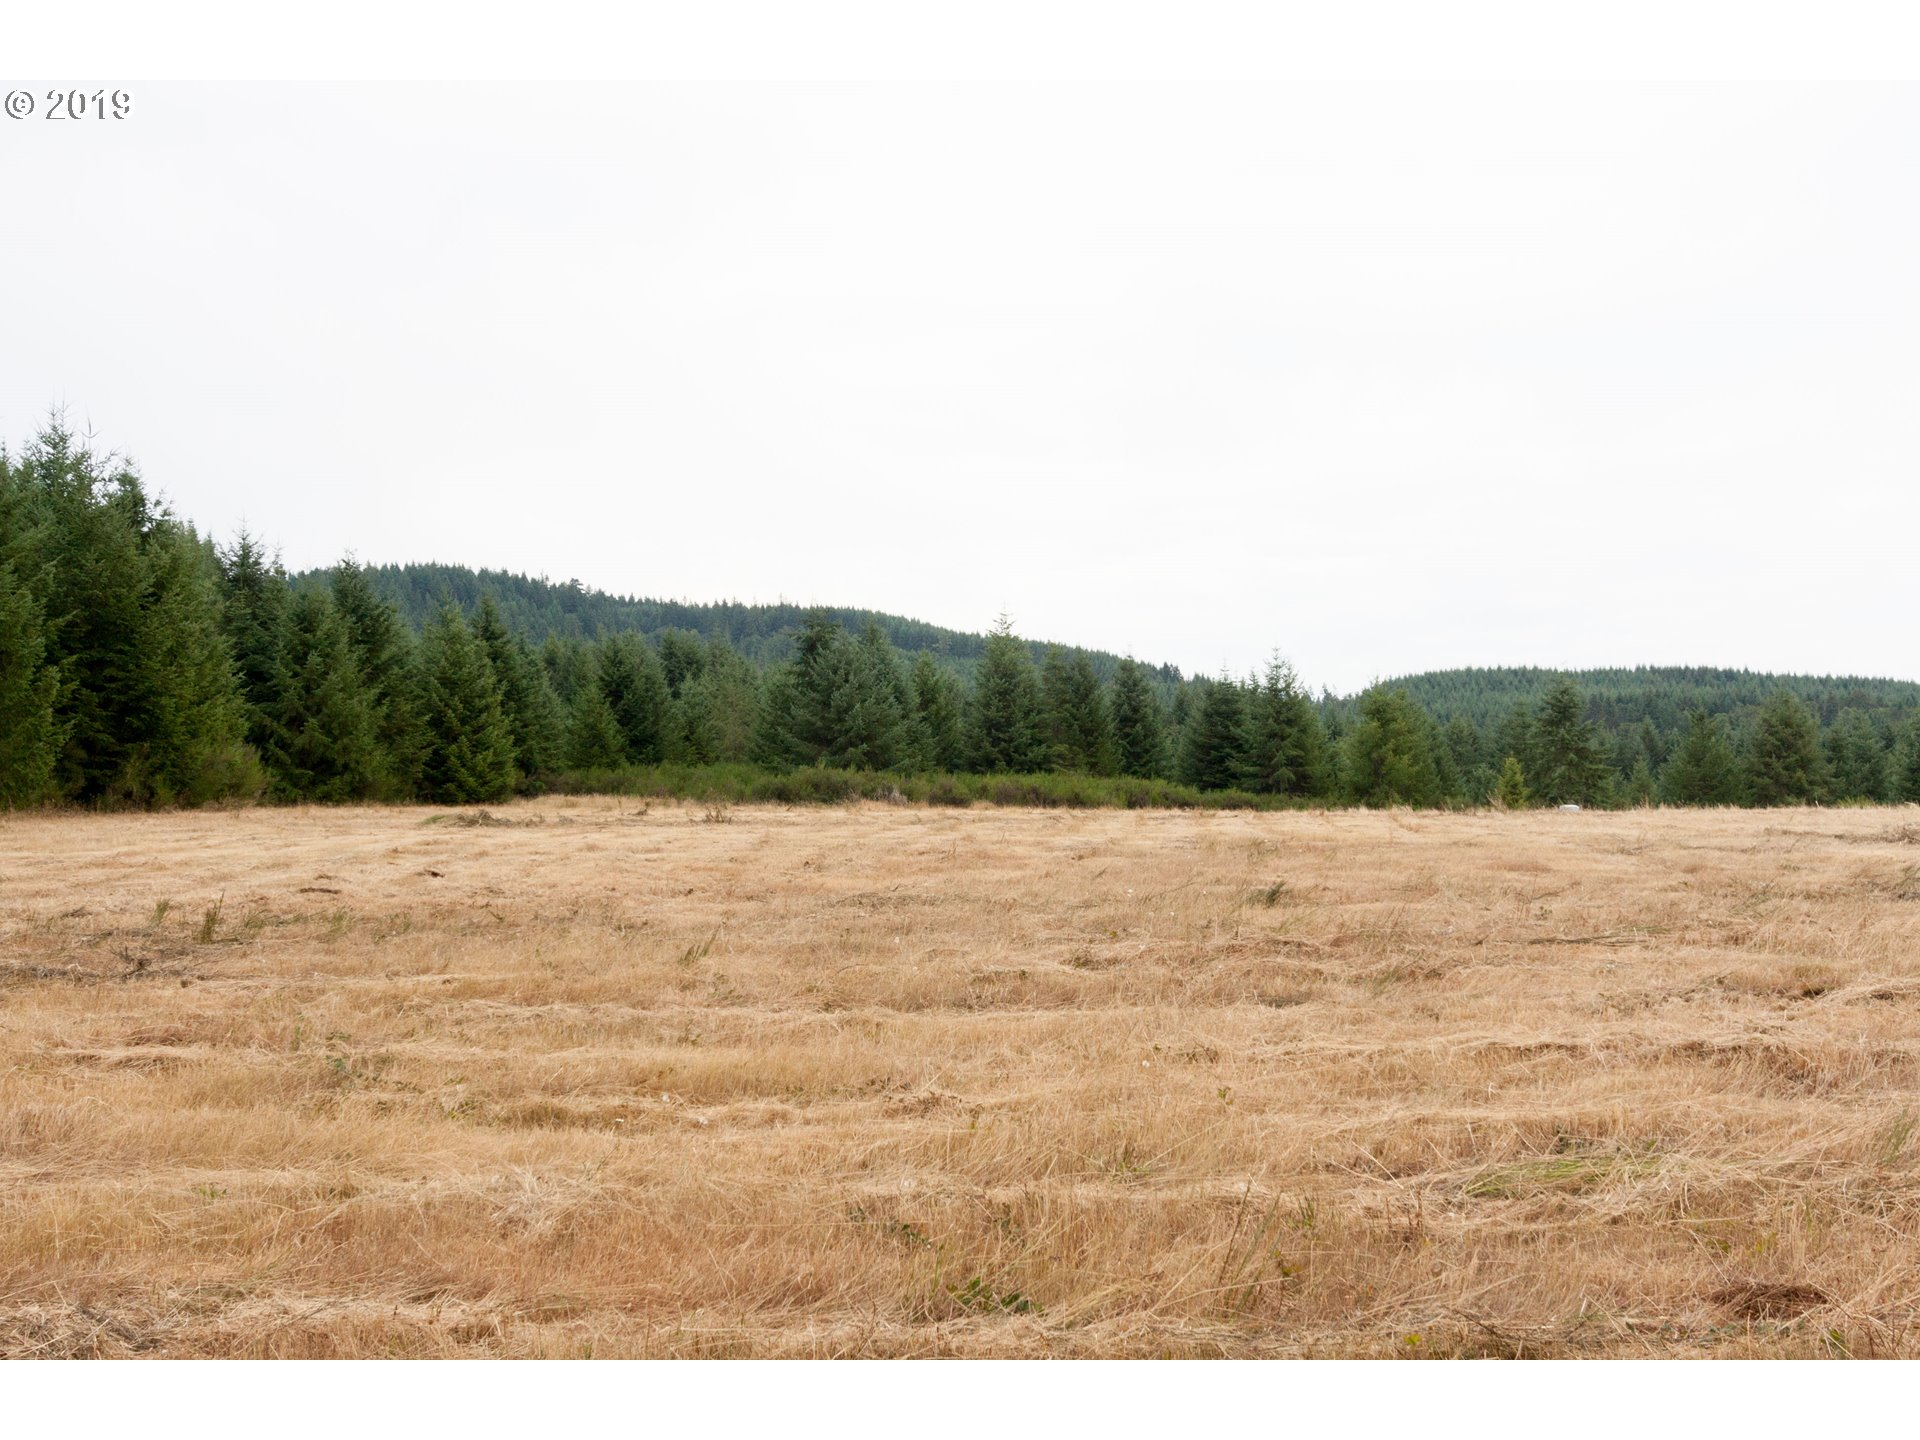 Photo of 45130 McCully Mtn (E of) RD